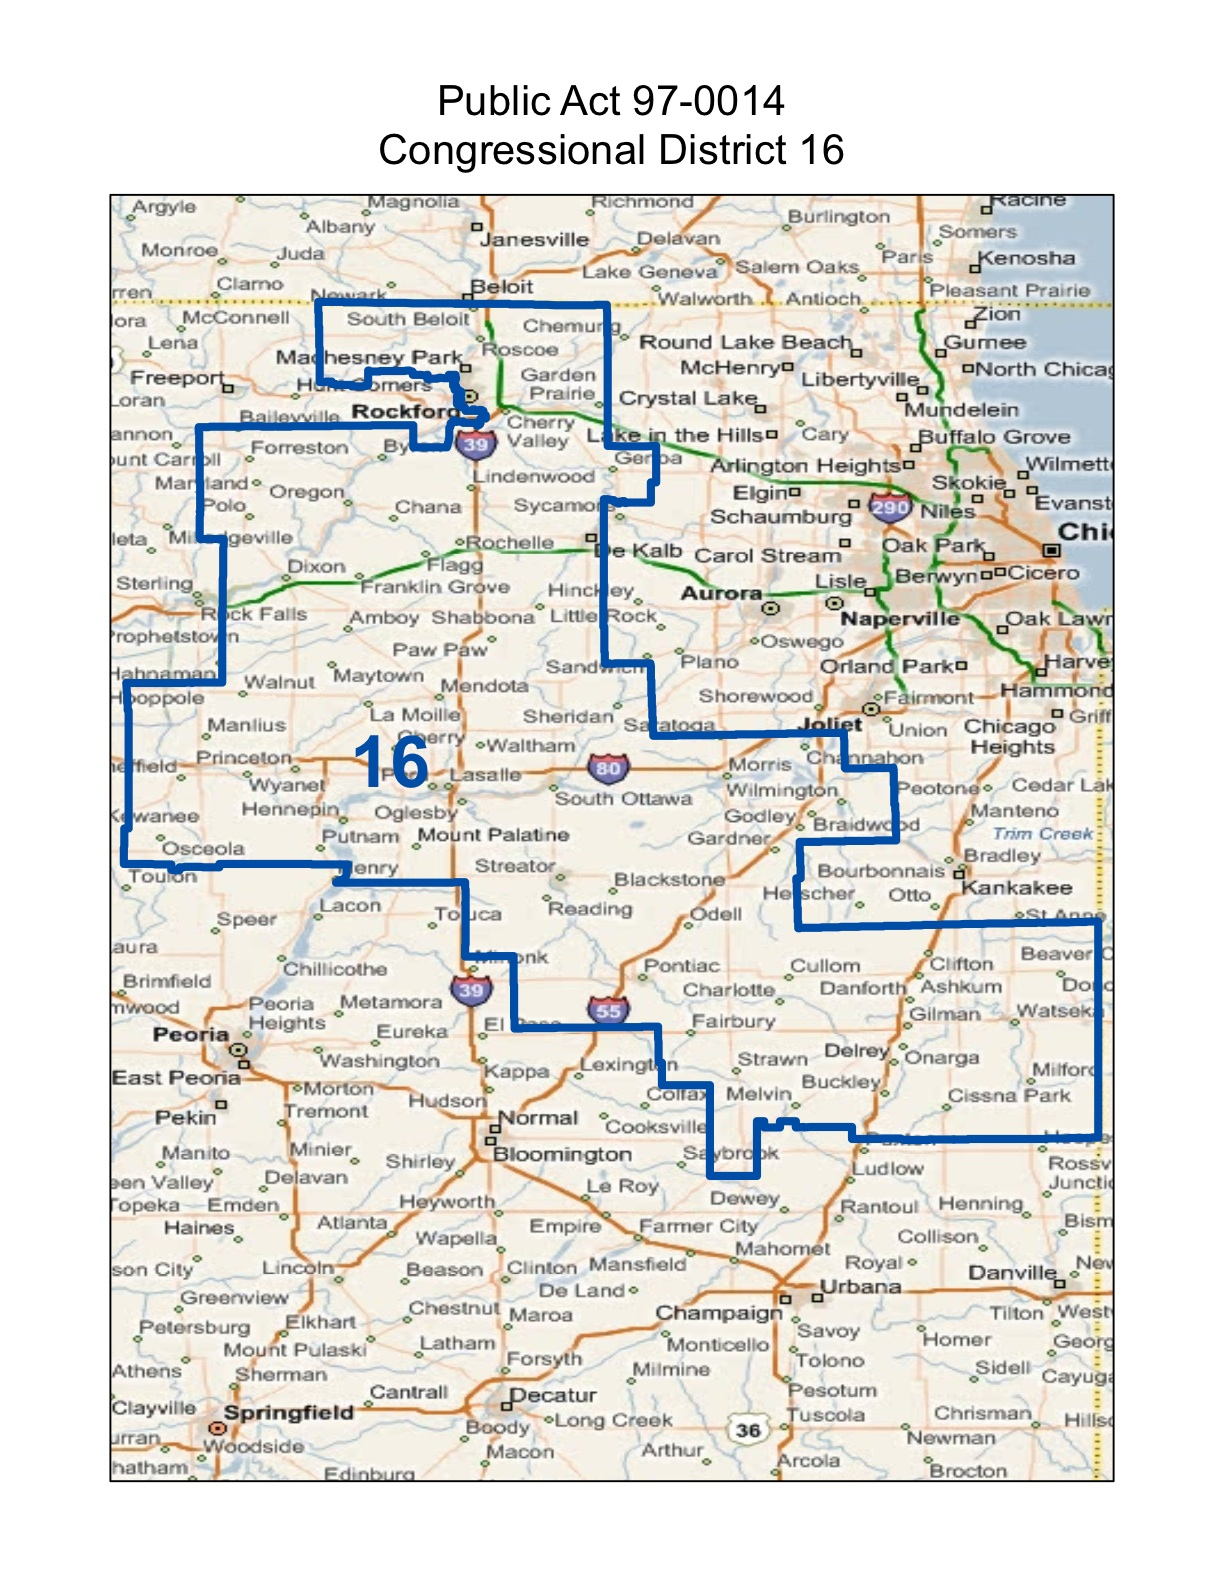 illinois 16th congressional district